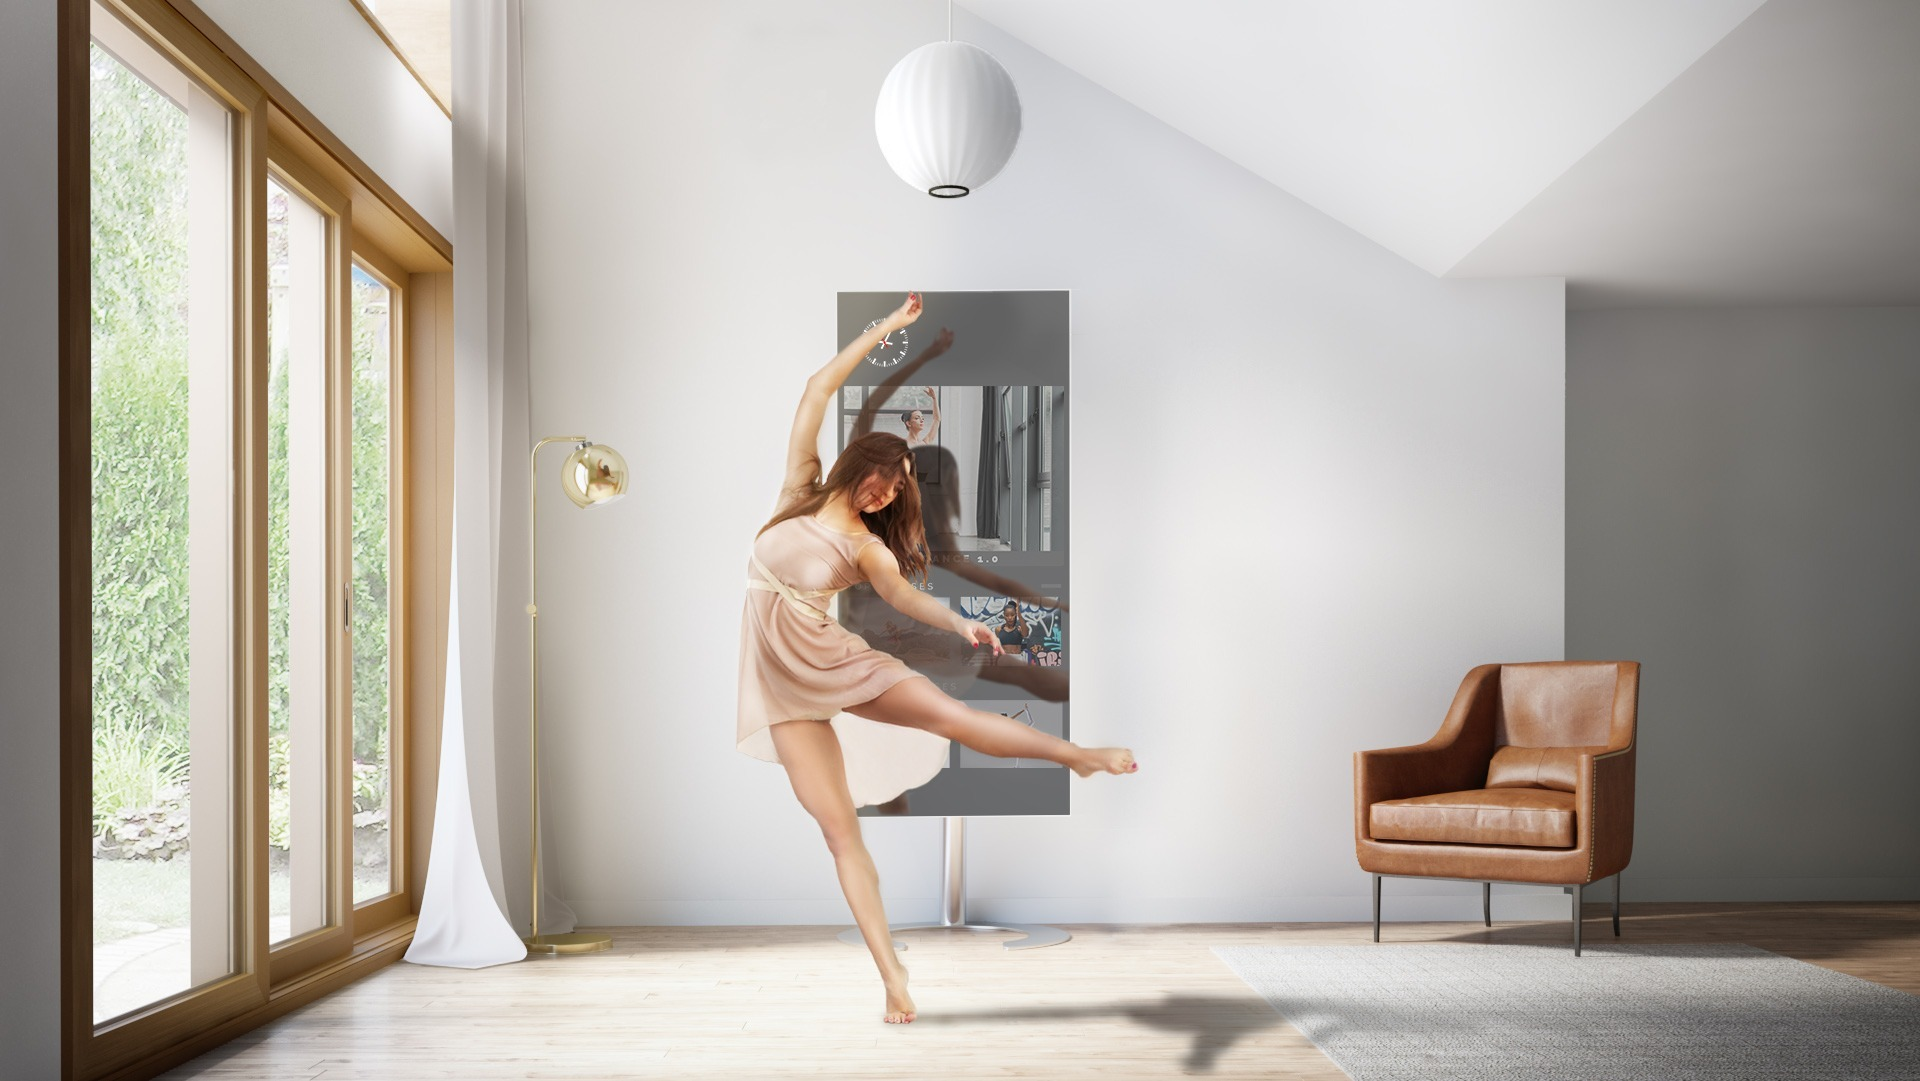 A woman dancing ballet in front of QAIO Flex Fitness Mirror